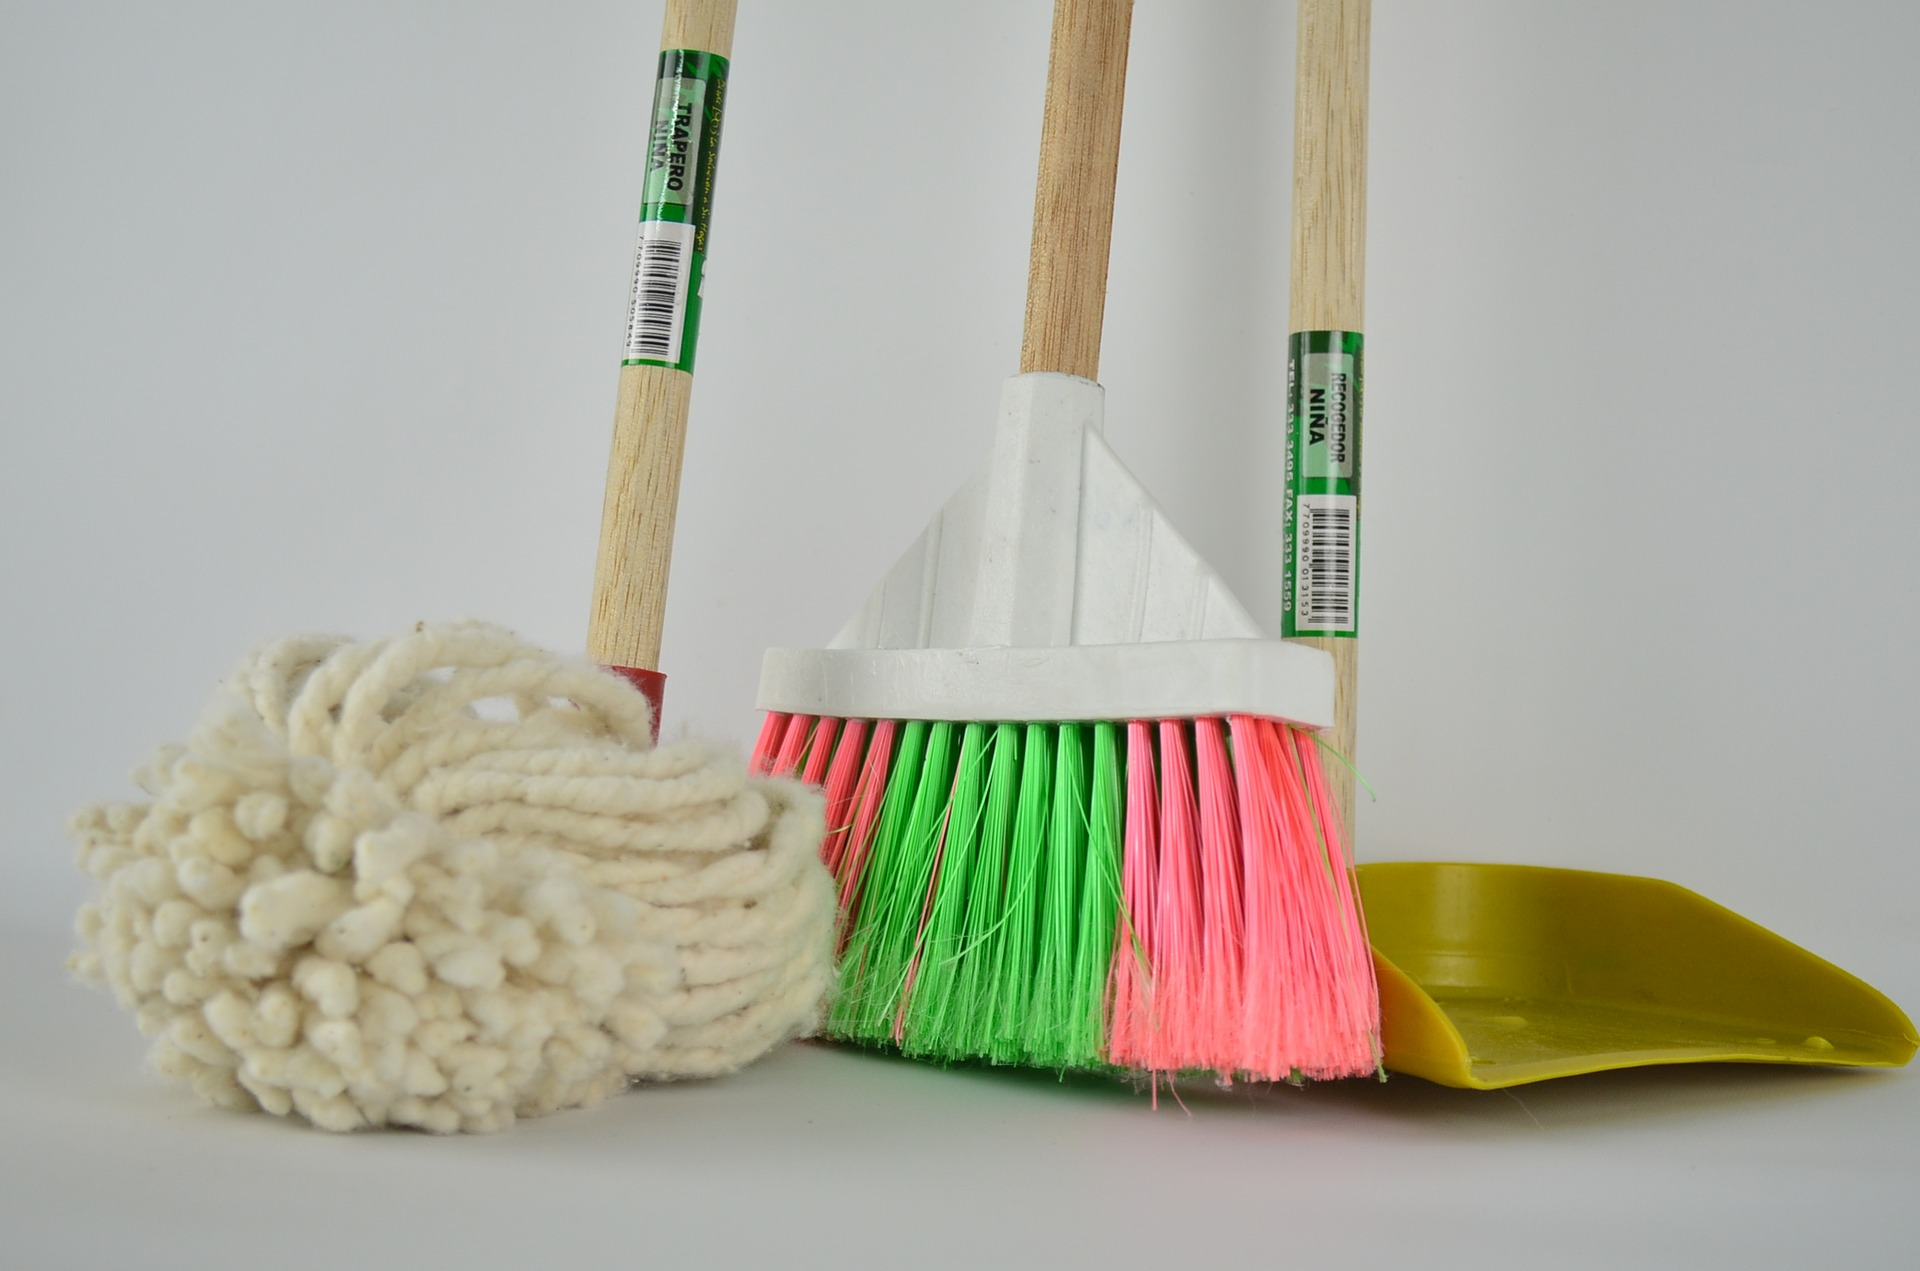 Mops, Broomes, Cleaning Supplies